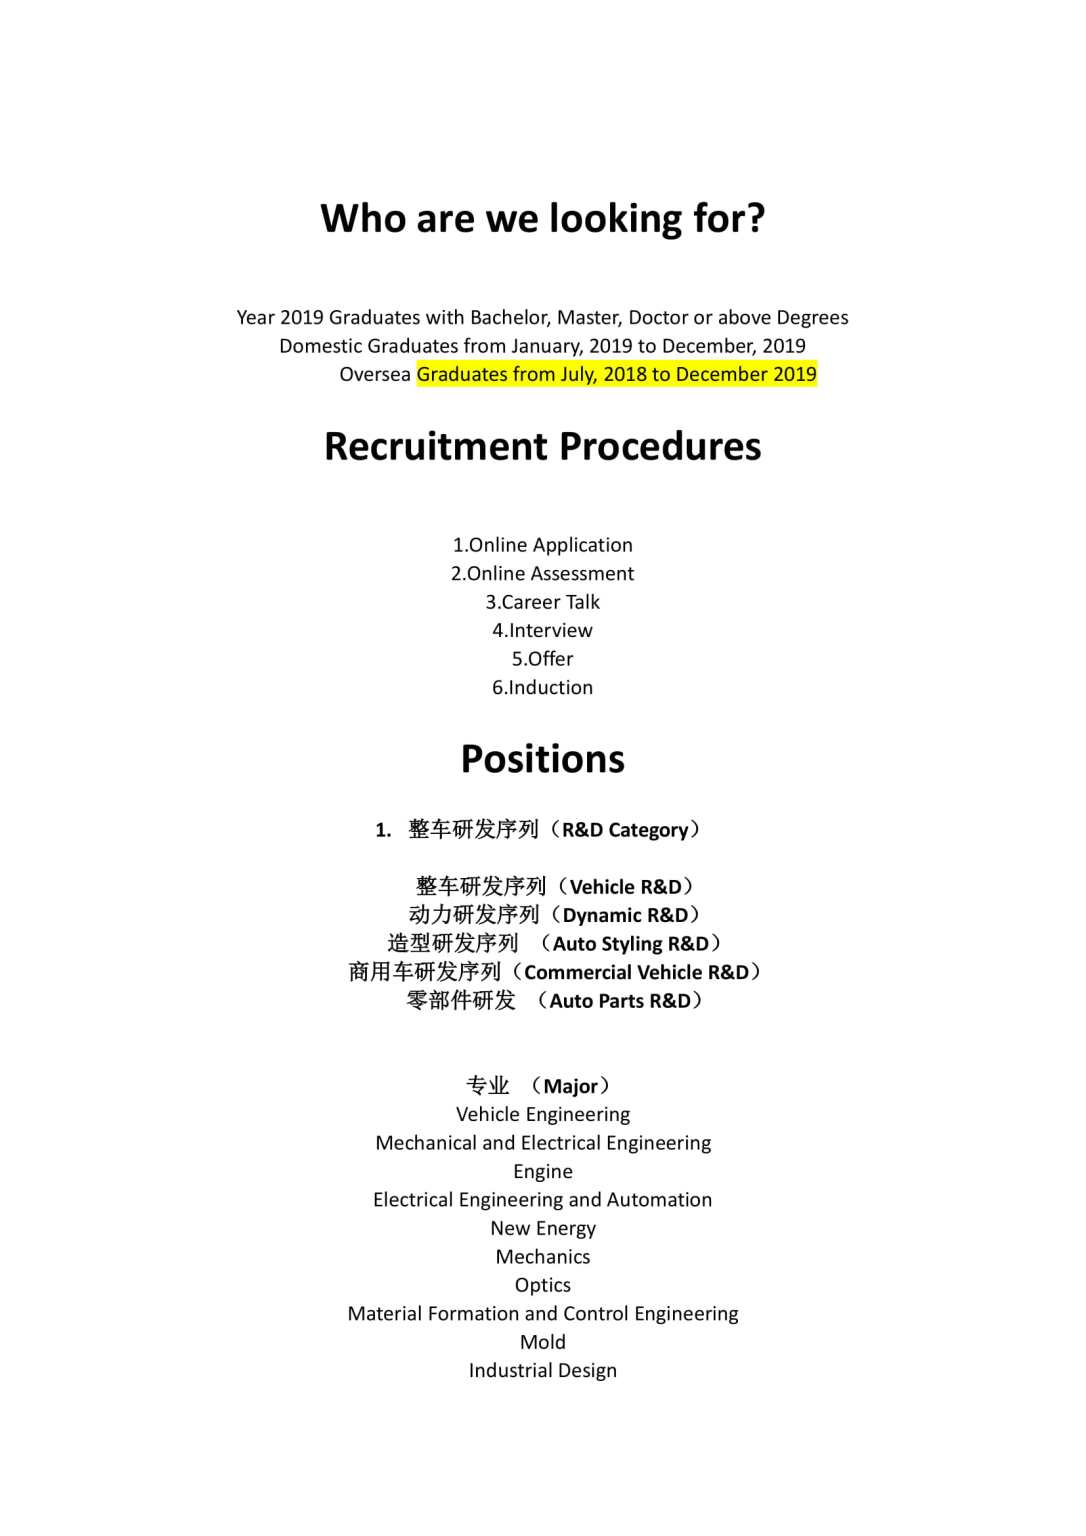 ZGH China - Full-time positions for Chinese students-2